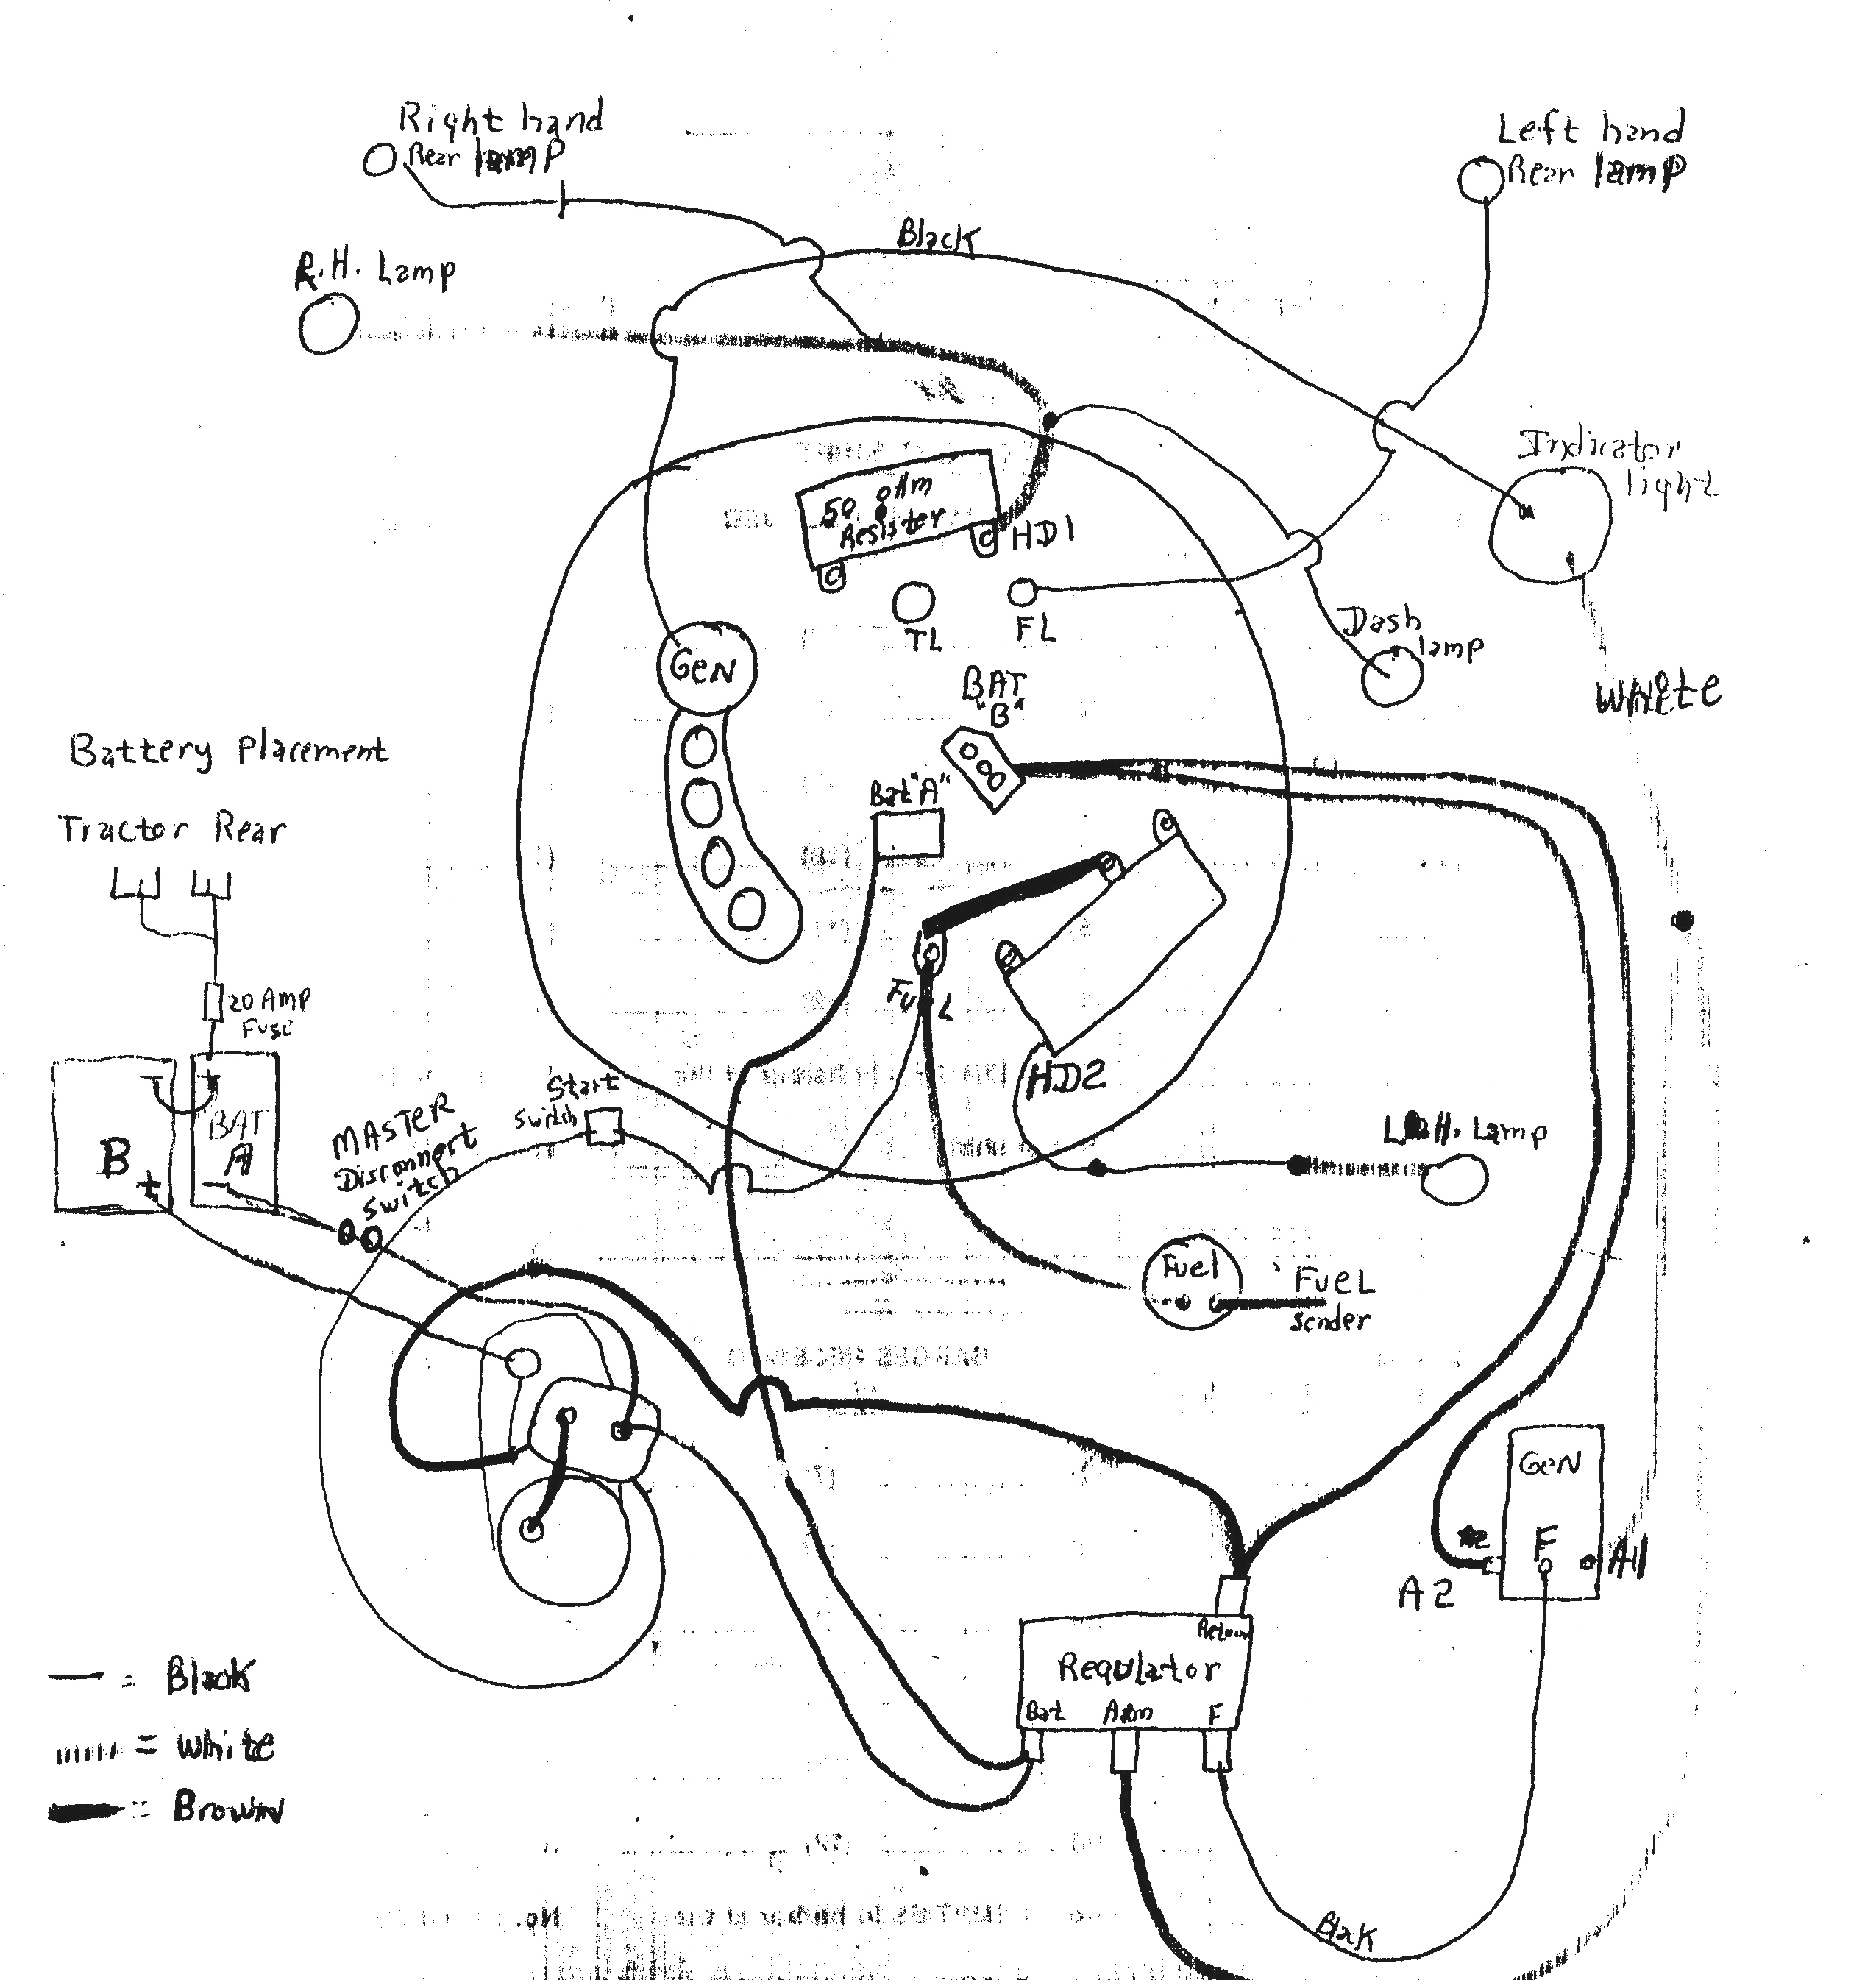 Imt 539 Wiring Diagram also Chevy Cruze Air Conditioning Wiring Diagrams additionally John Deere 4440 Wiring Diagram in addition Wiring Diagram For 3020 John Deere Gas moreover John Deere 24volt. on john deere 1010 ignition switch wiring diagram